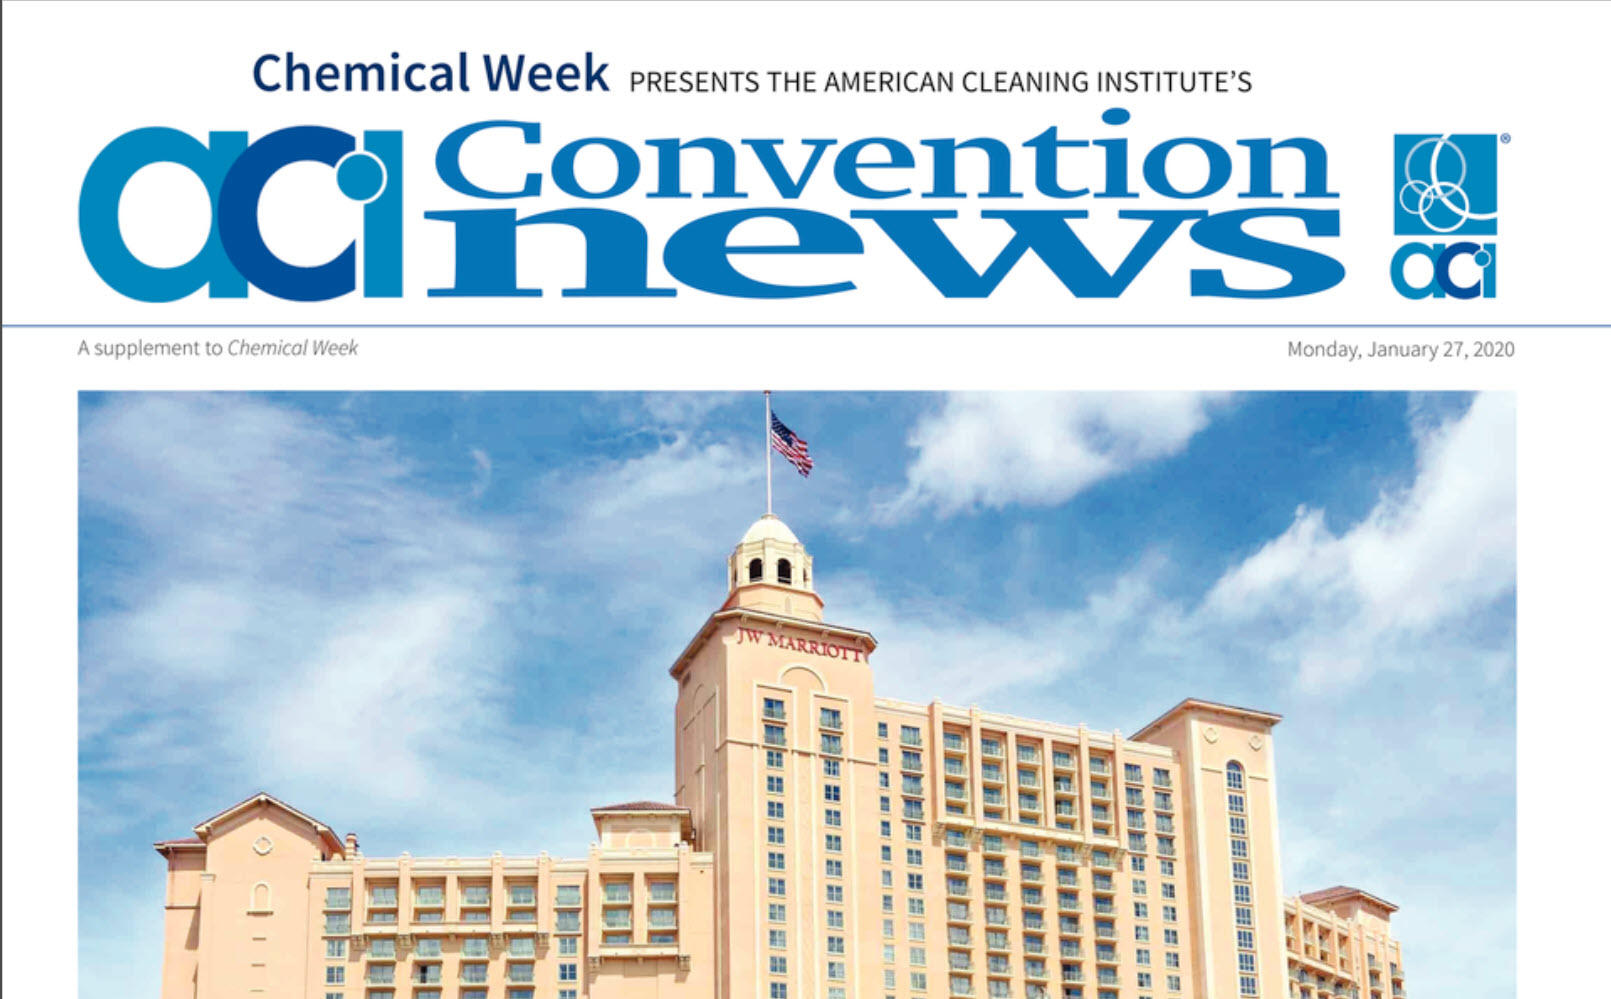 ConventionNews